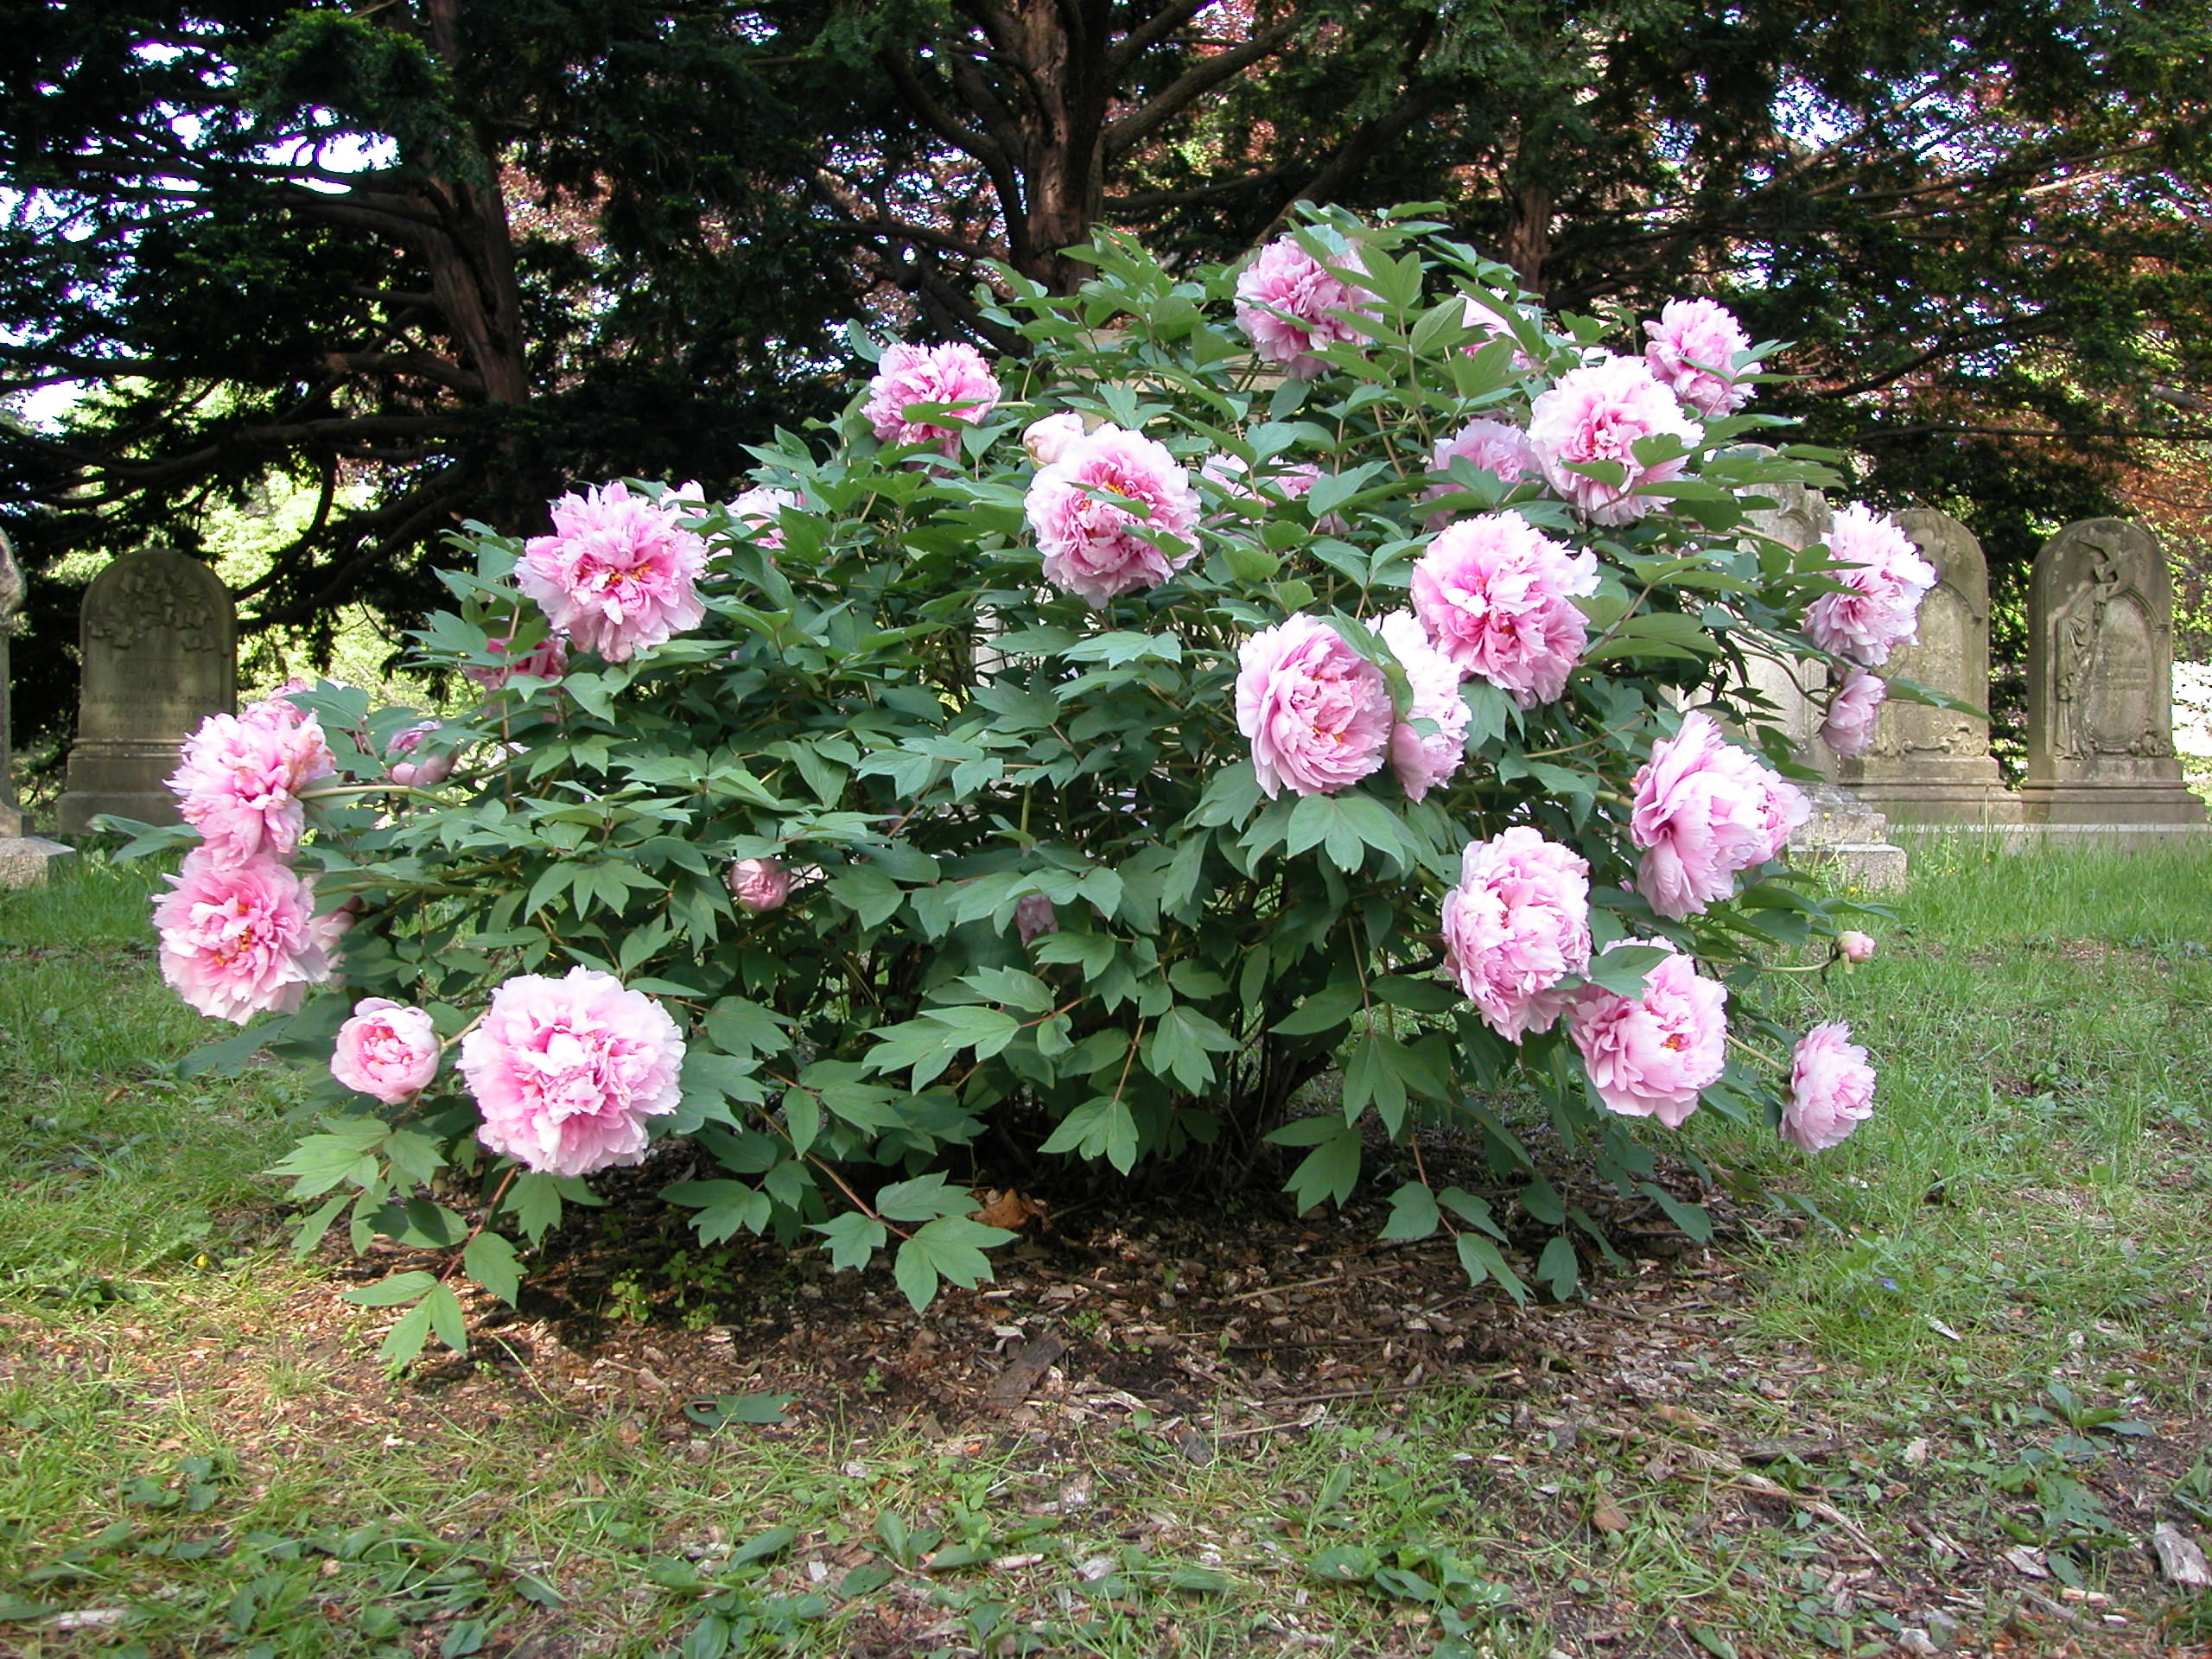 Horticultural Highlight: Paeonia suffruticosa | Mount Auburn Cemetery